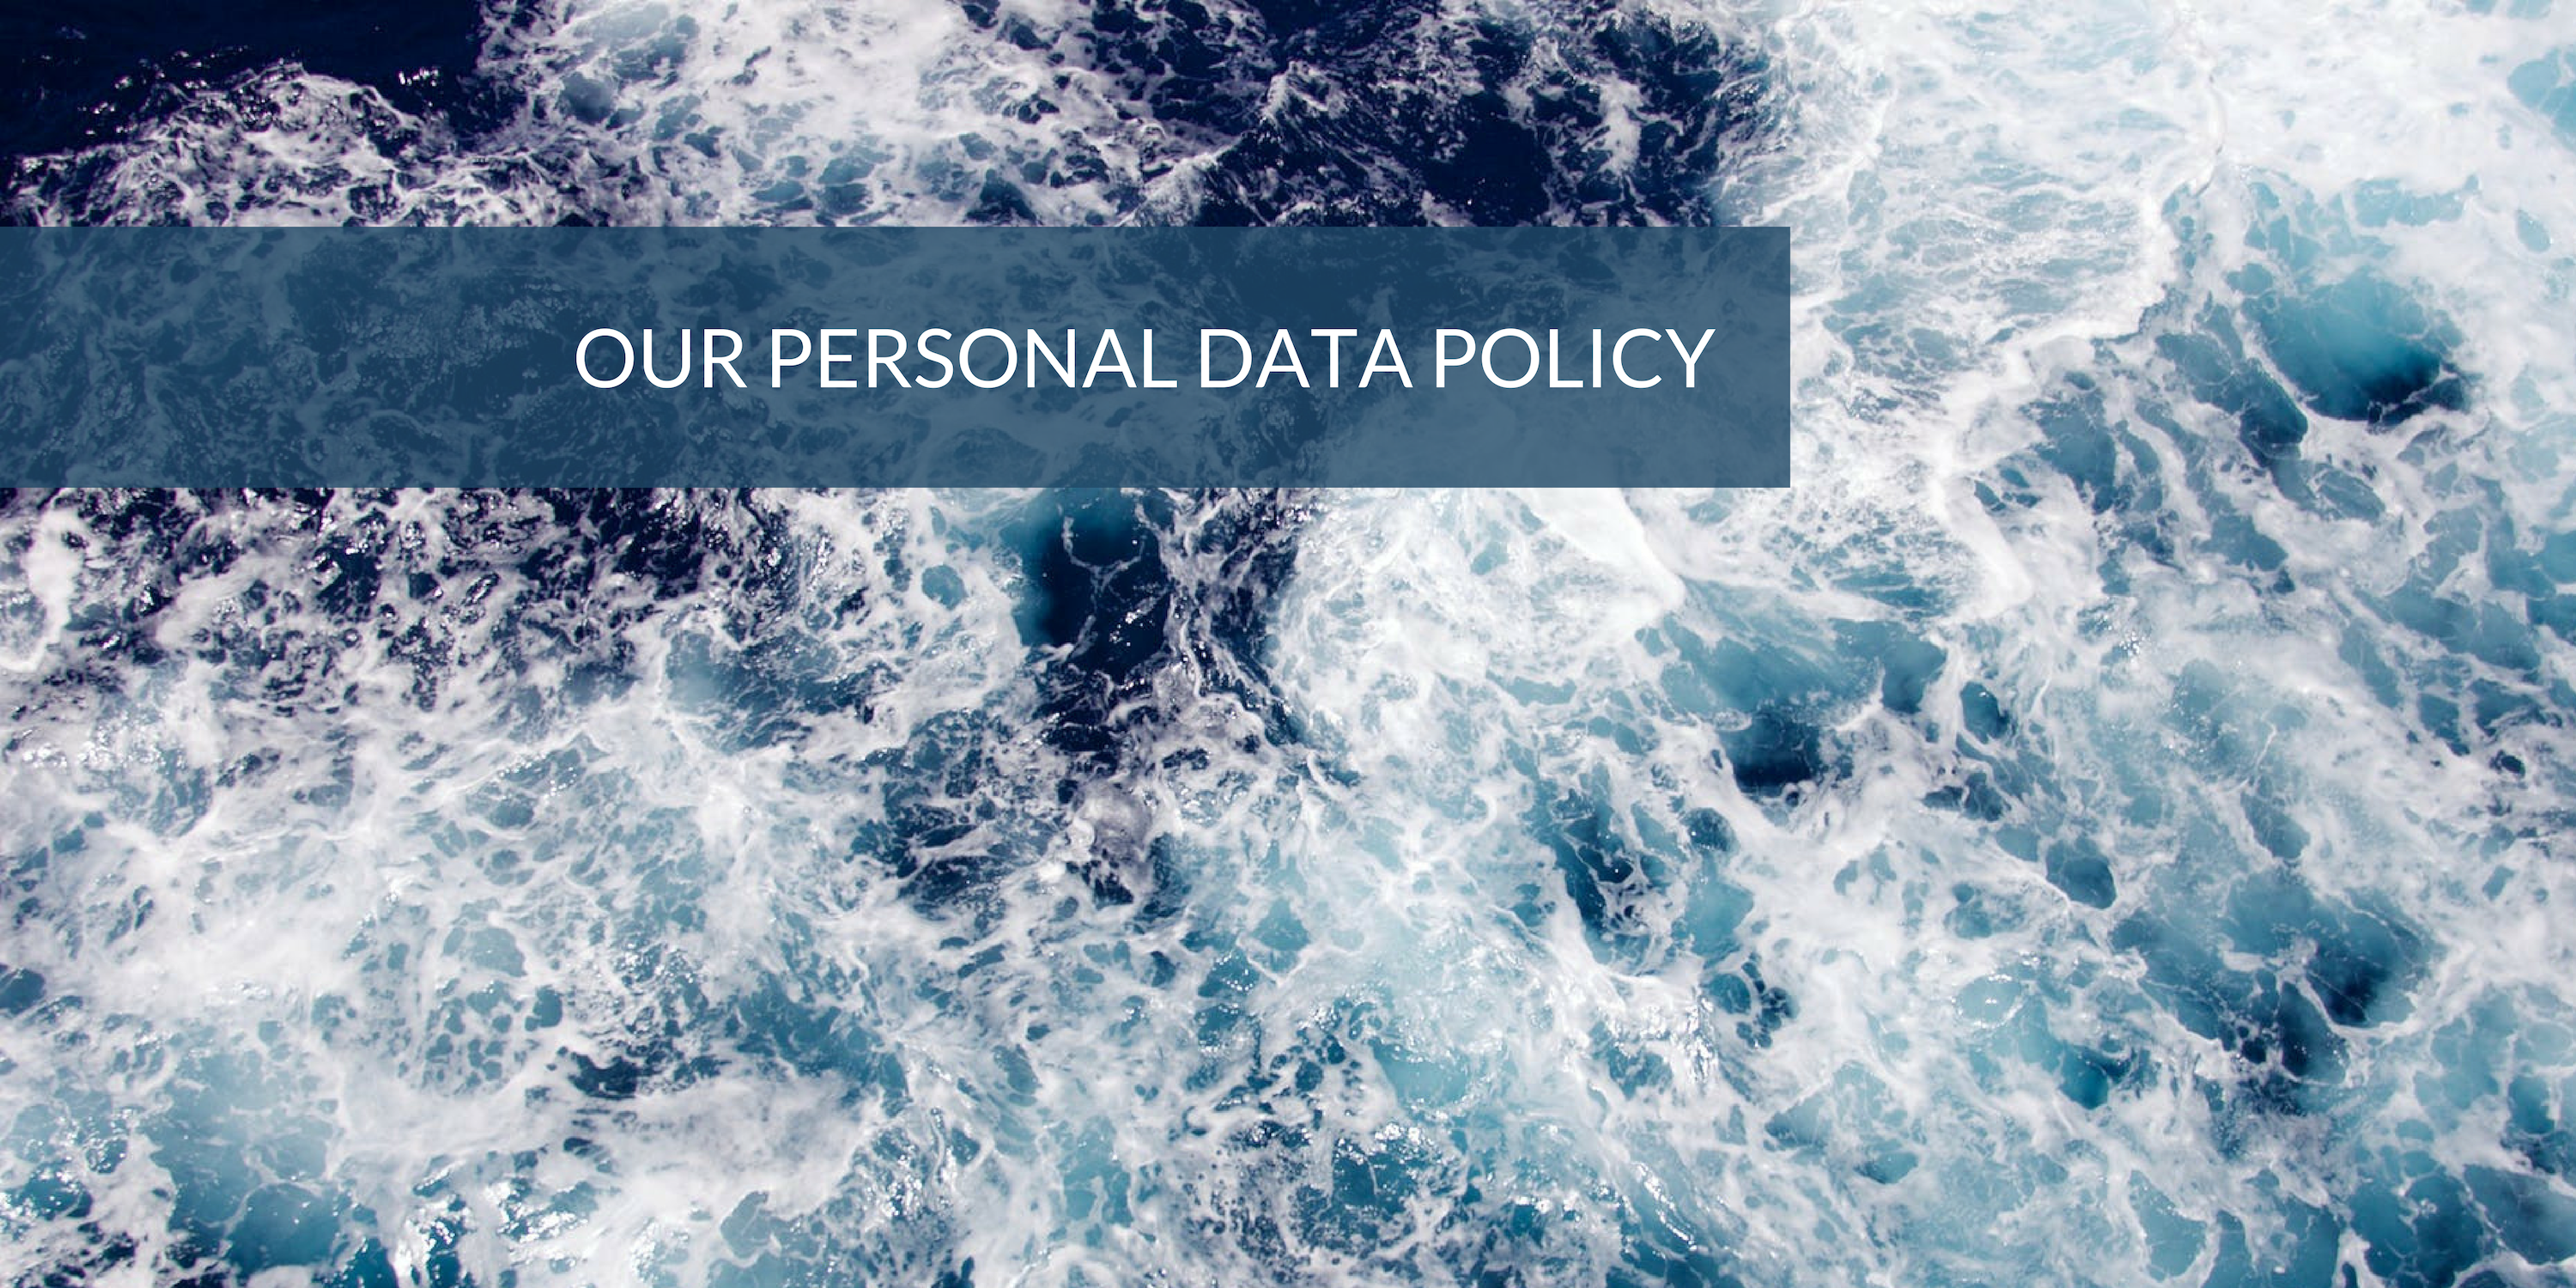 PERSONAL DATA POLICY